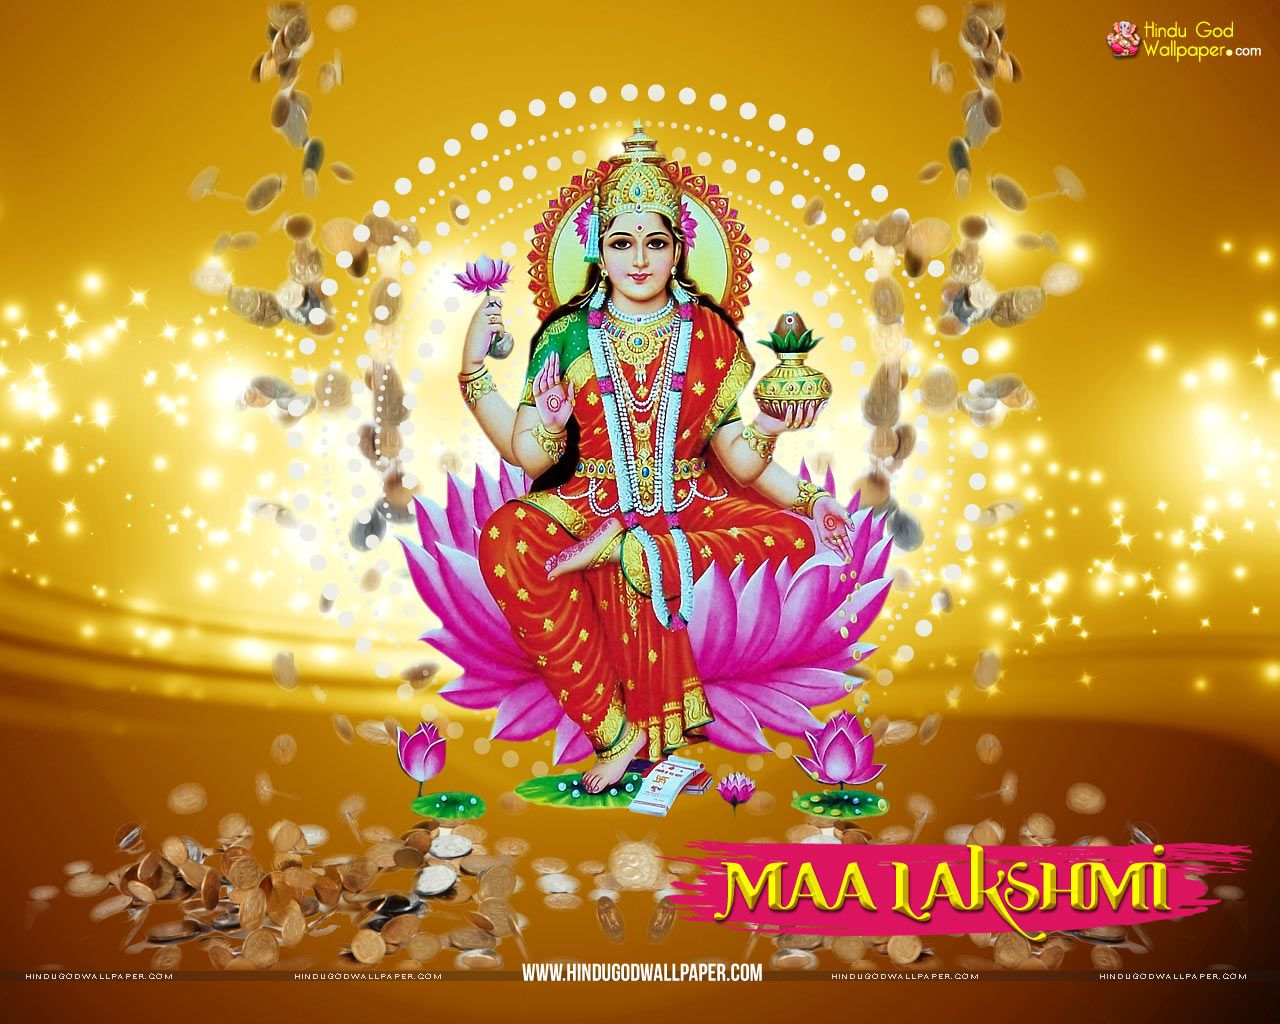 Maa Lakshmi Wallpaper Hd Full Size Free Download Full Size In 2019